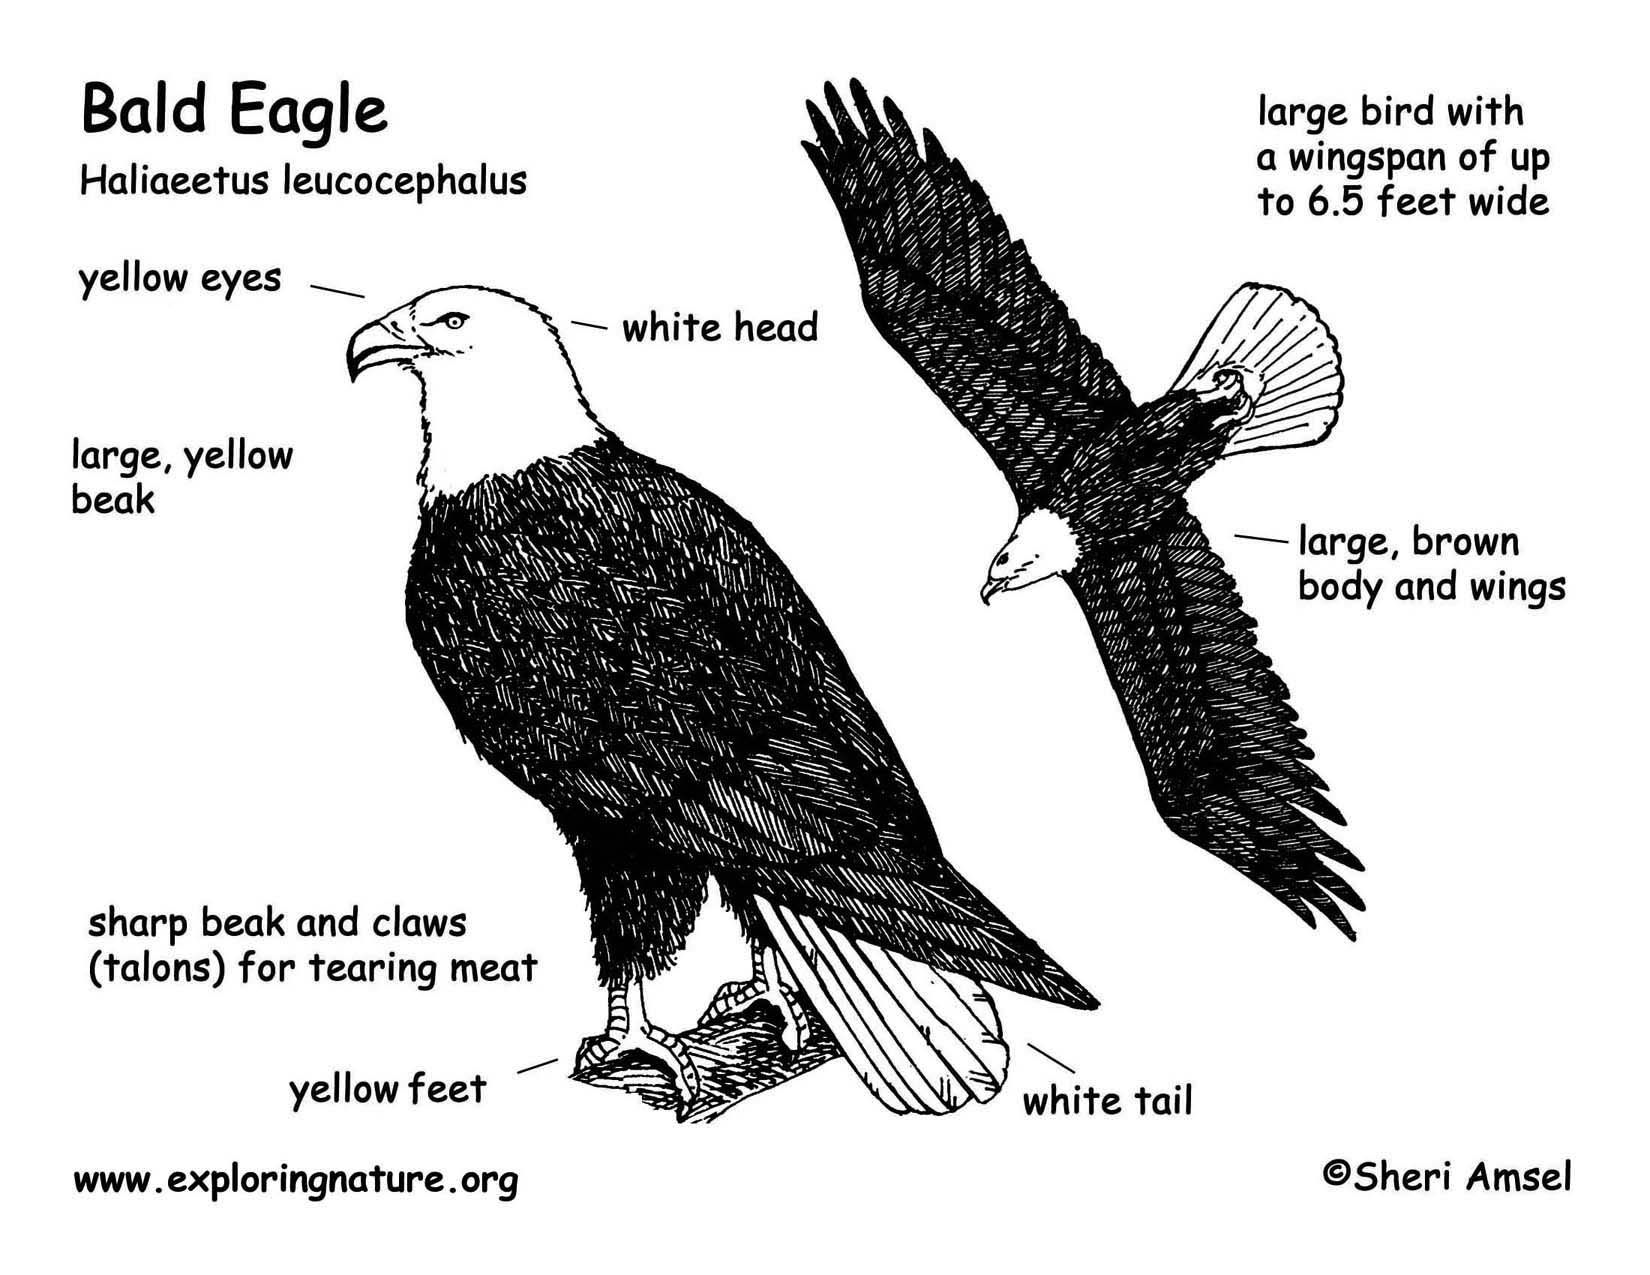 hight resolution of bald eagle track out near cape alava on the beach of the pacific baldeaglediagram eagle anatomy vintage eagle pigeon wings